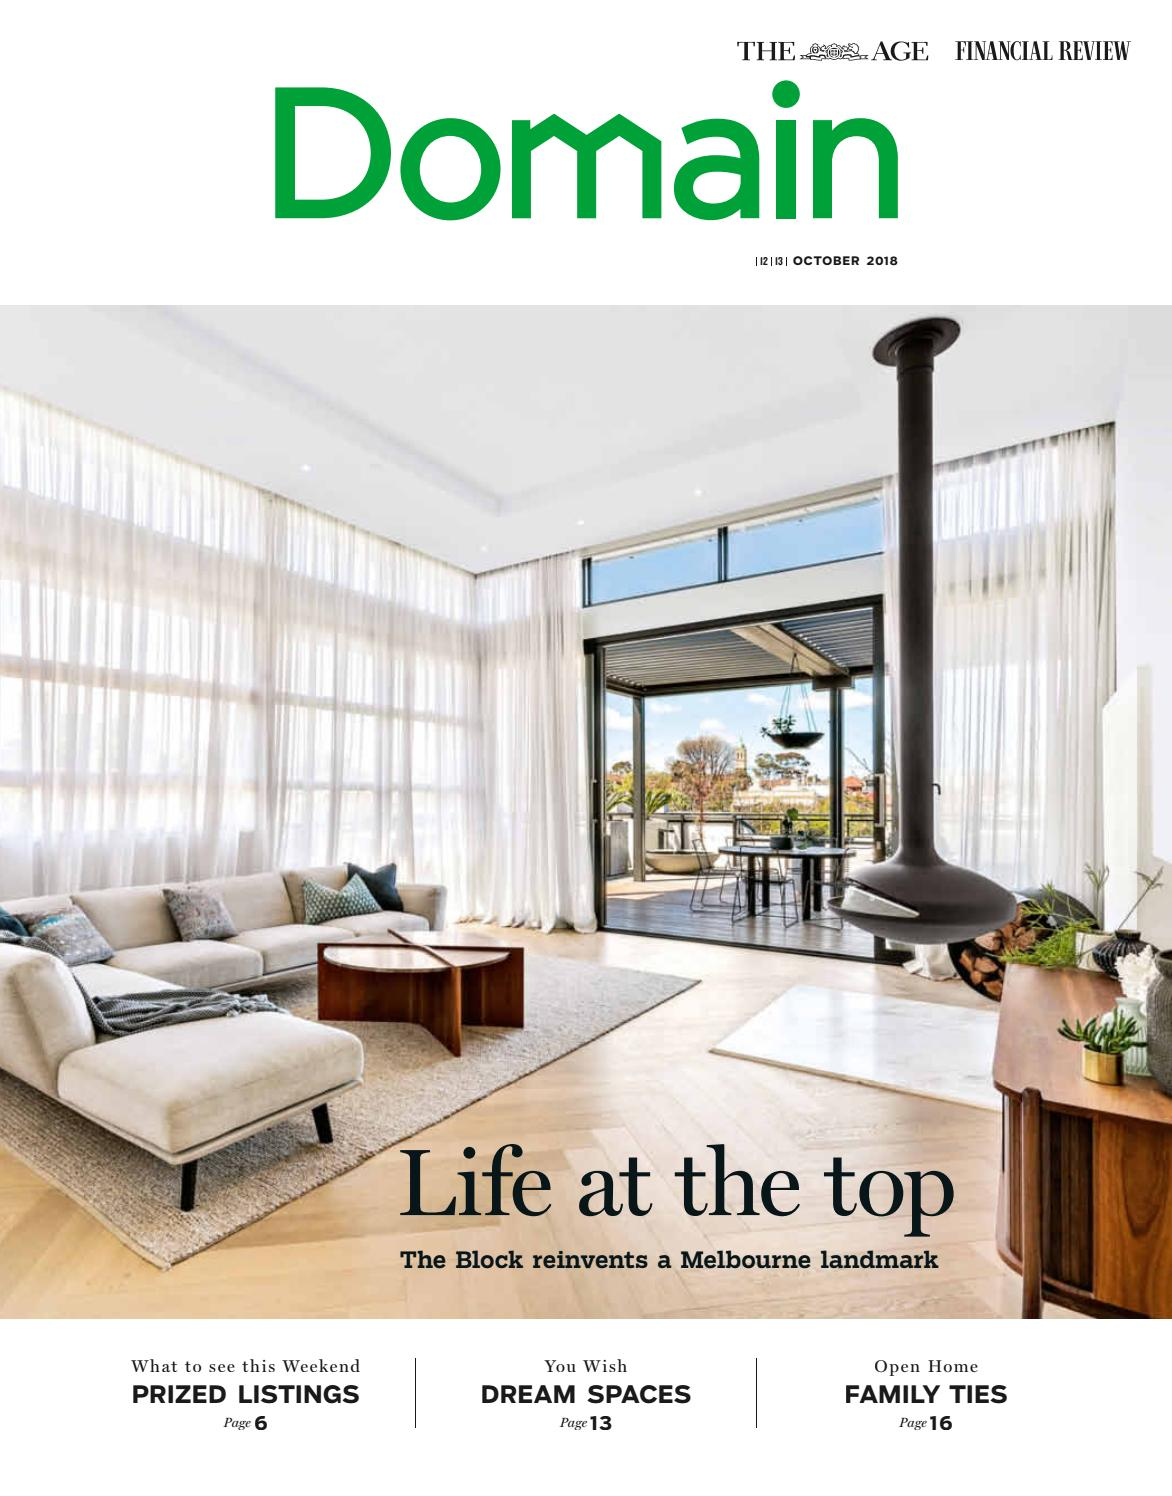 Cc Designer Homes Pty Ltd Bulleen Vic Designer Houses Domain - The Age, October 12-13 By Domain Magazines - Issuu